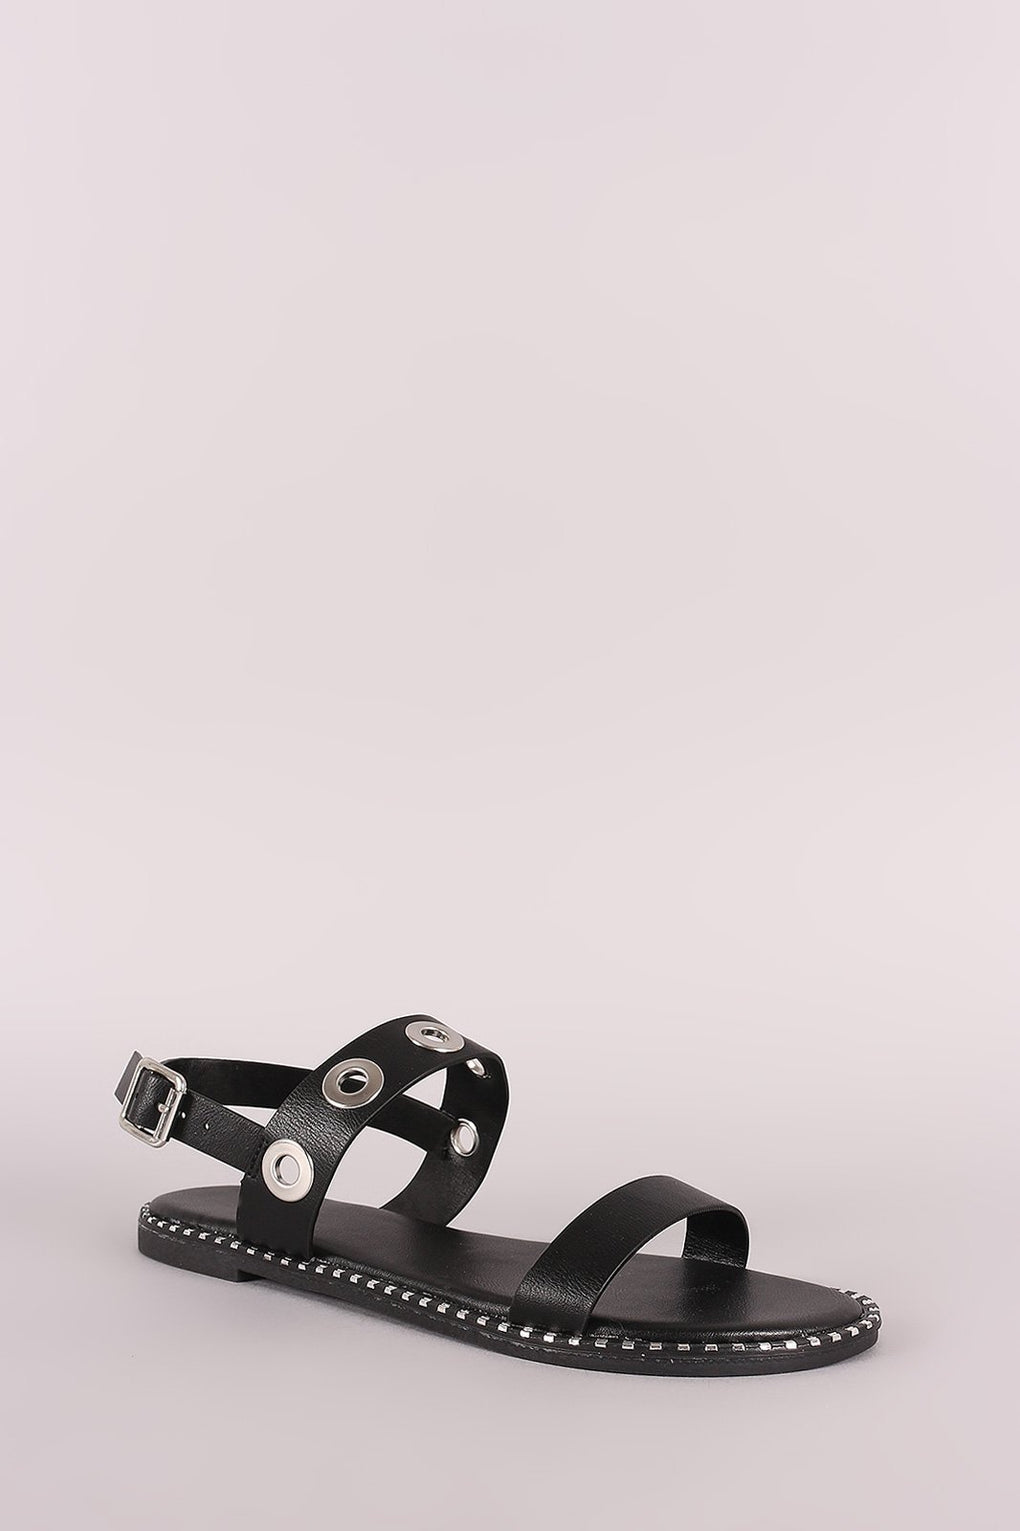 Bamboo Grommet Double Band Slingback Flat Sandal - Danish Fashion & Living Online Store SALE